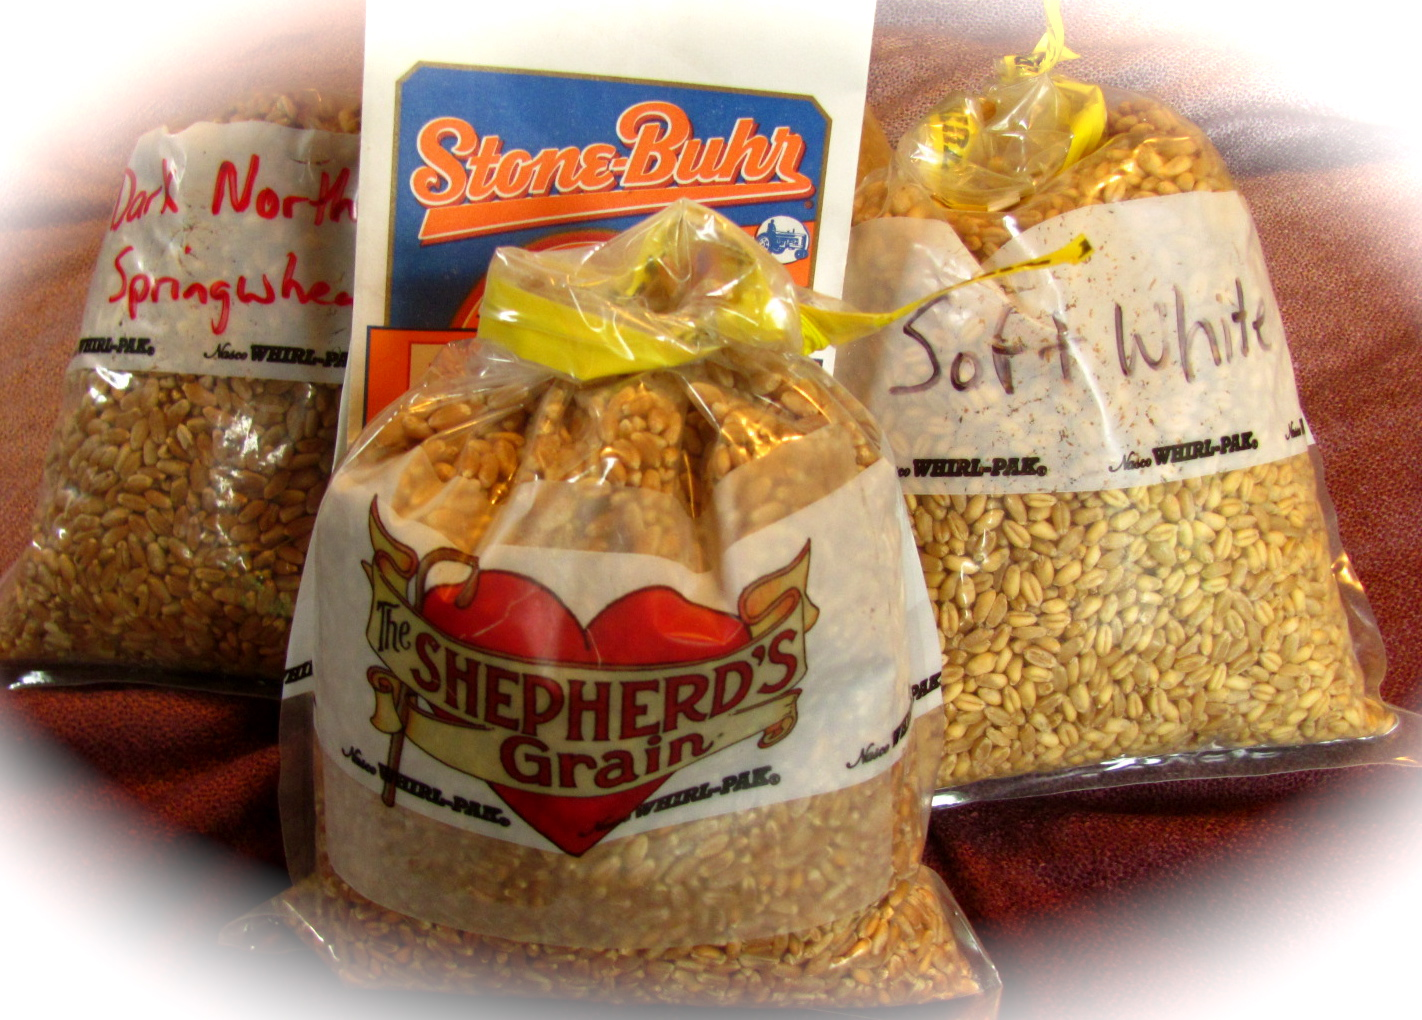 The Best Bread: Shepherd's Grain Flour